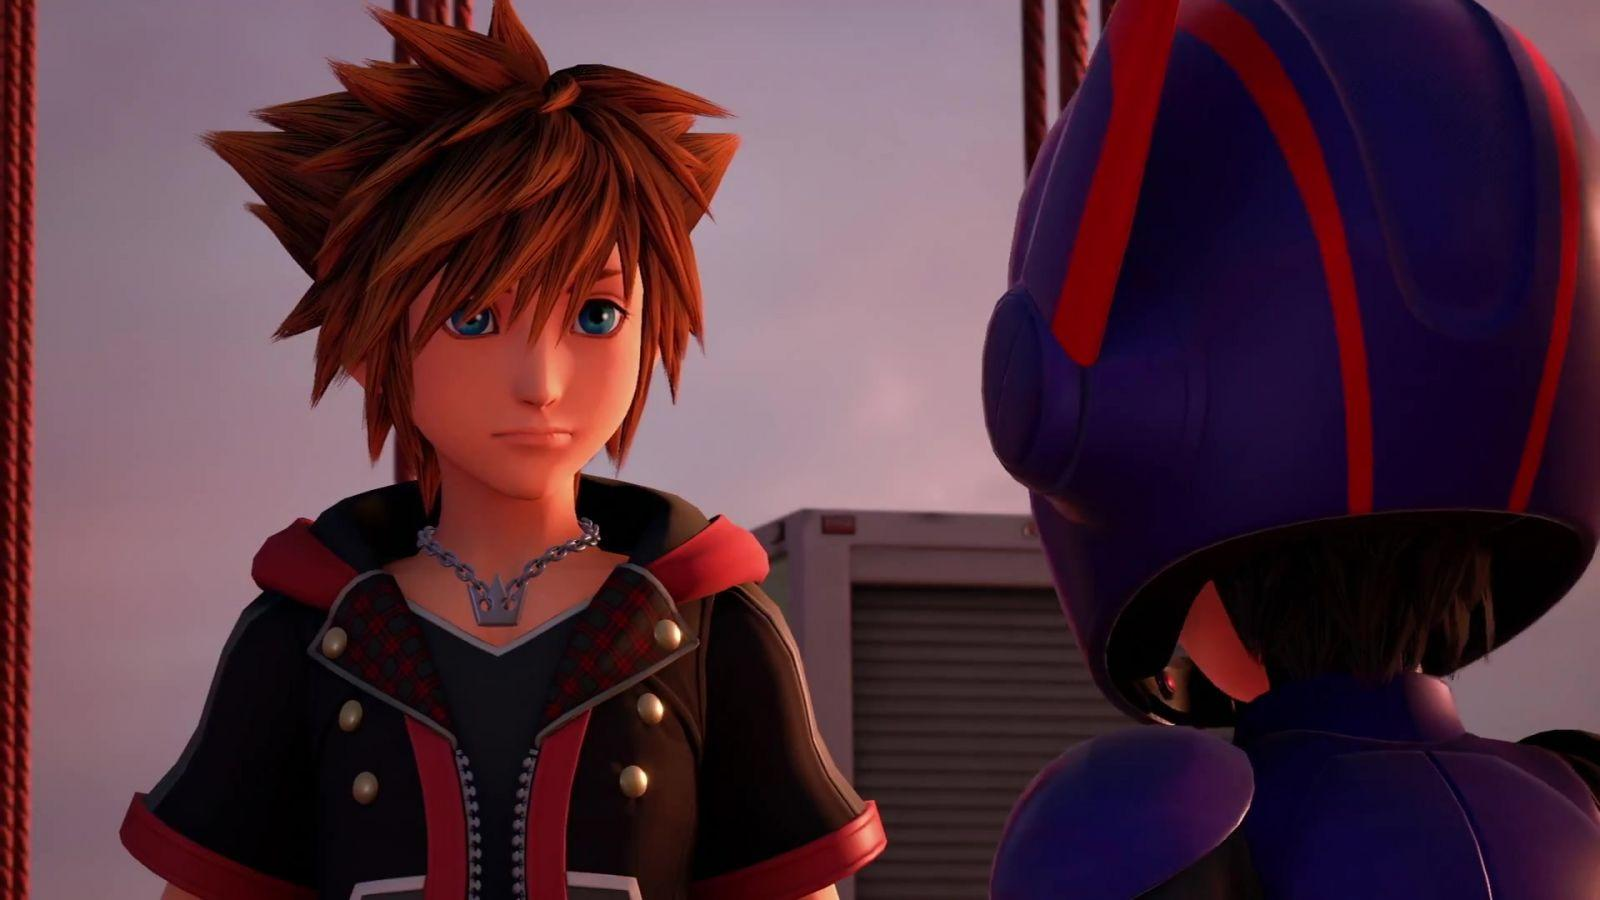 【KINGDOM HEARTS III】TGS 2018 Trailer Short Ver. 050